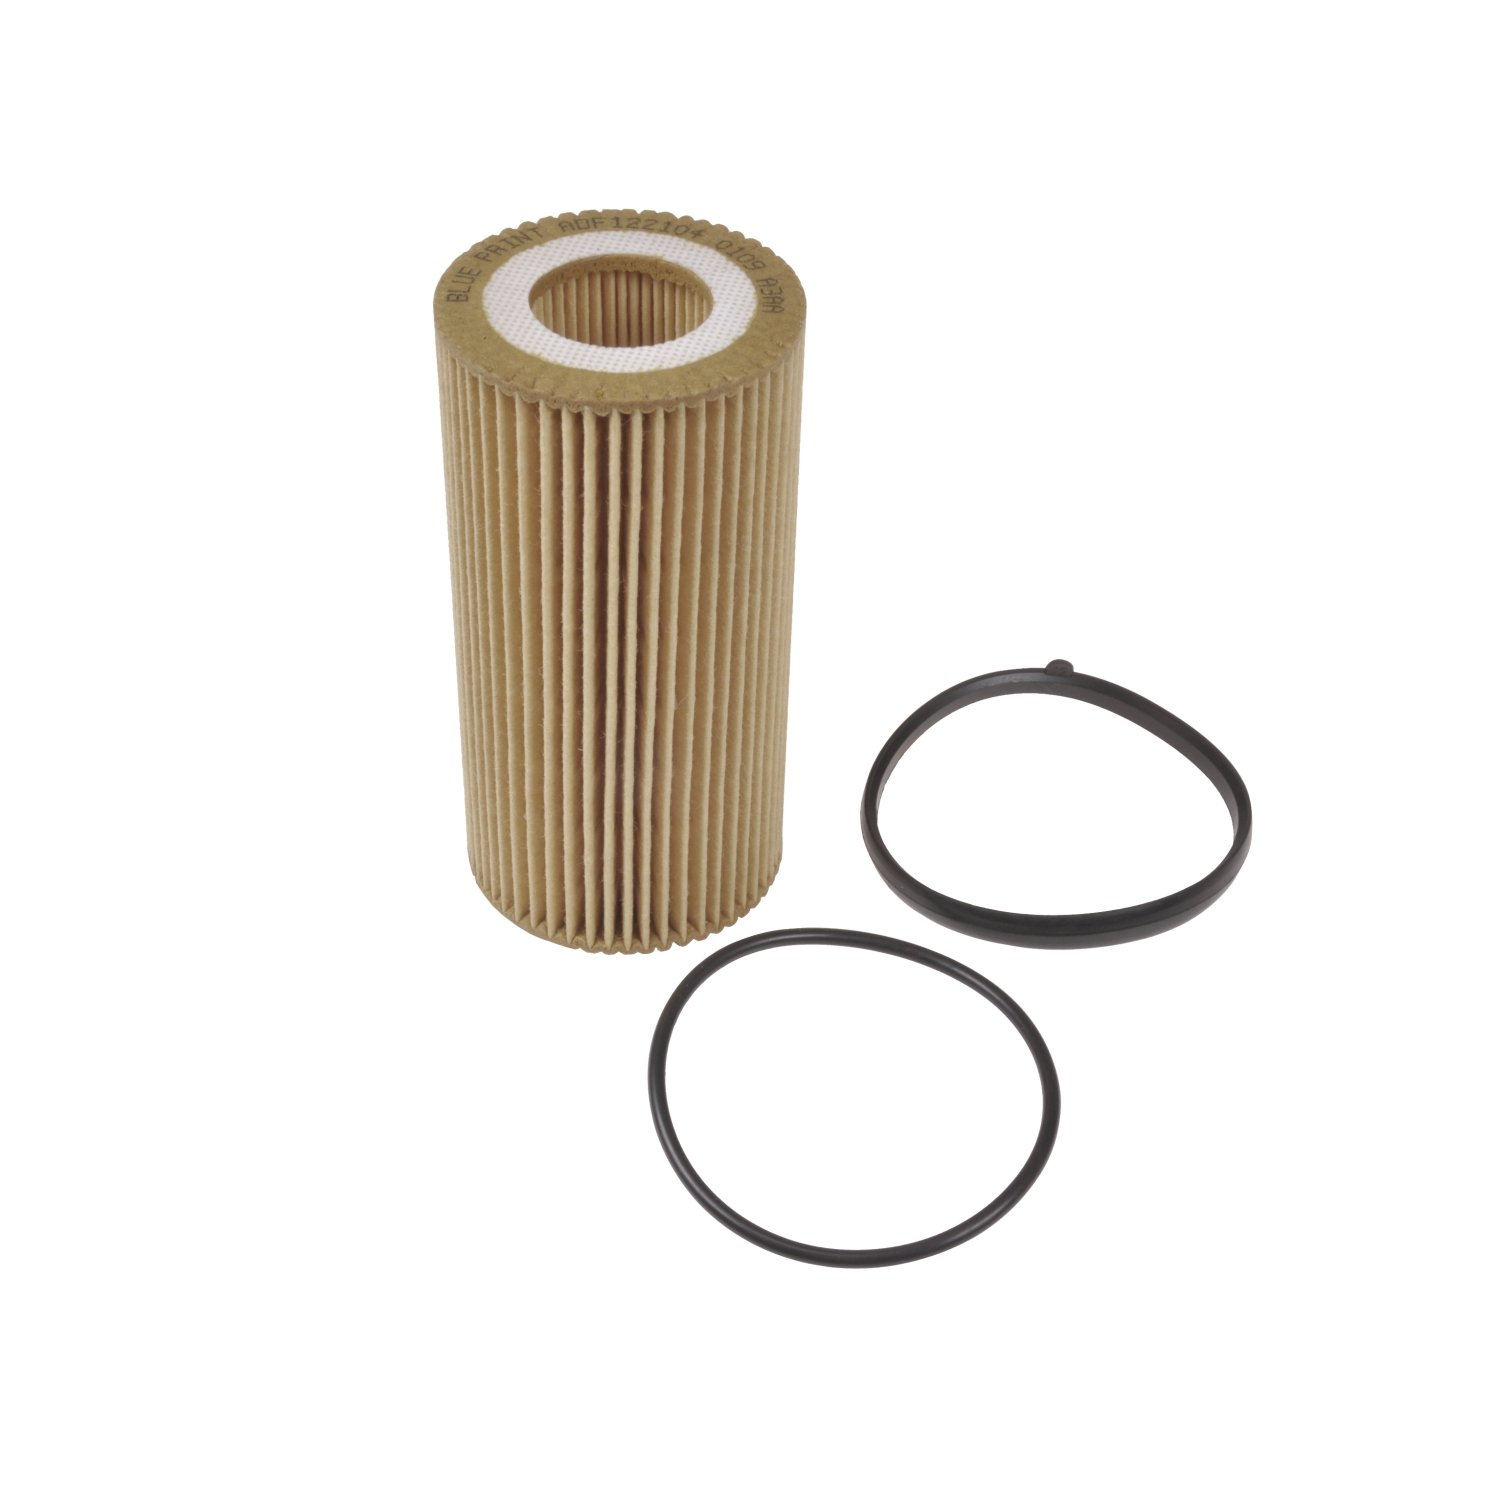 Blue Print ADF122104 Oil Filter with seal rings pack of one